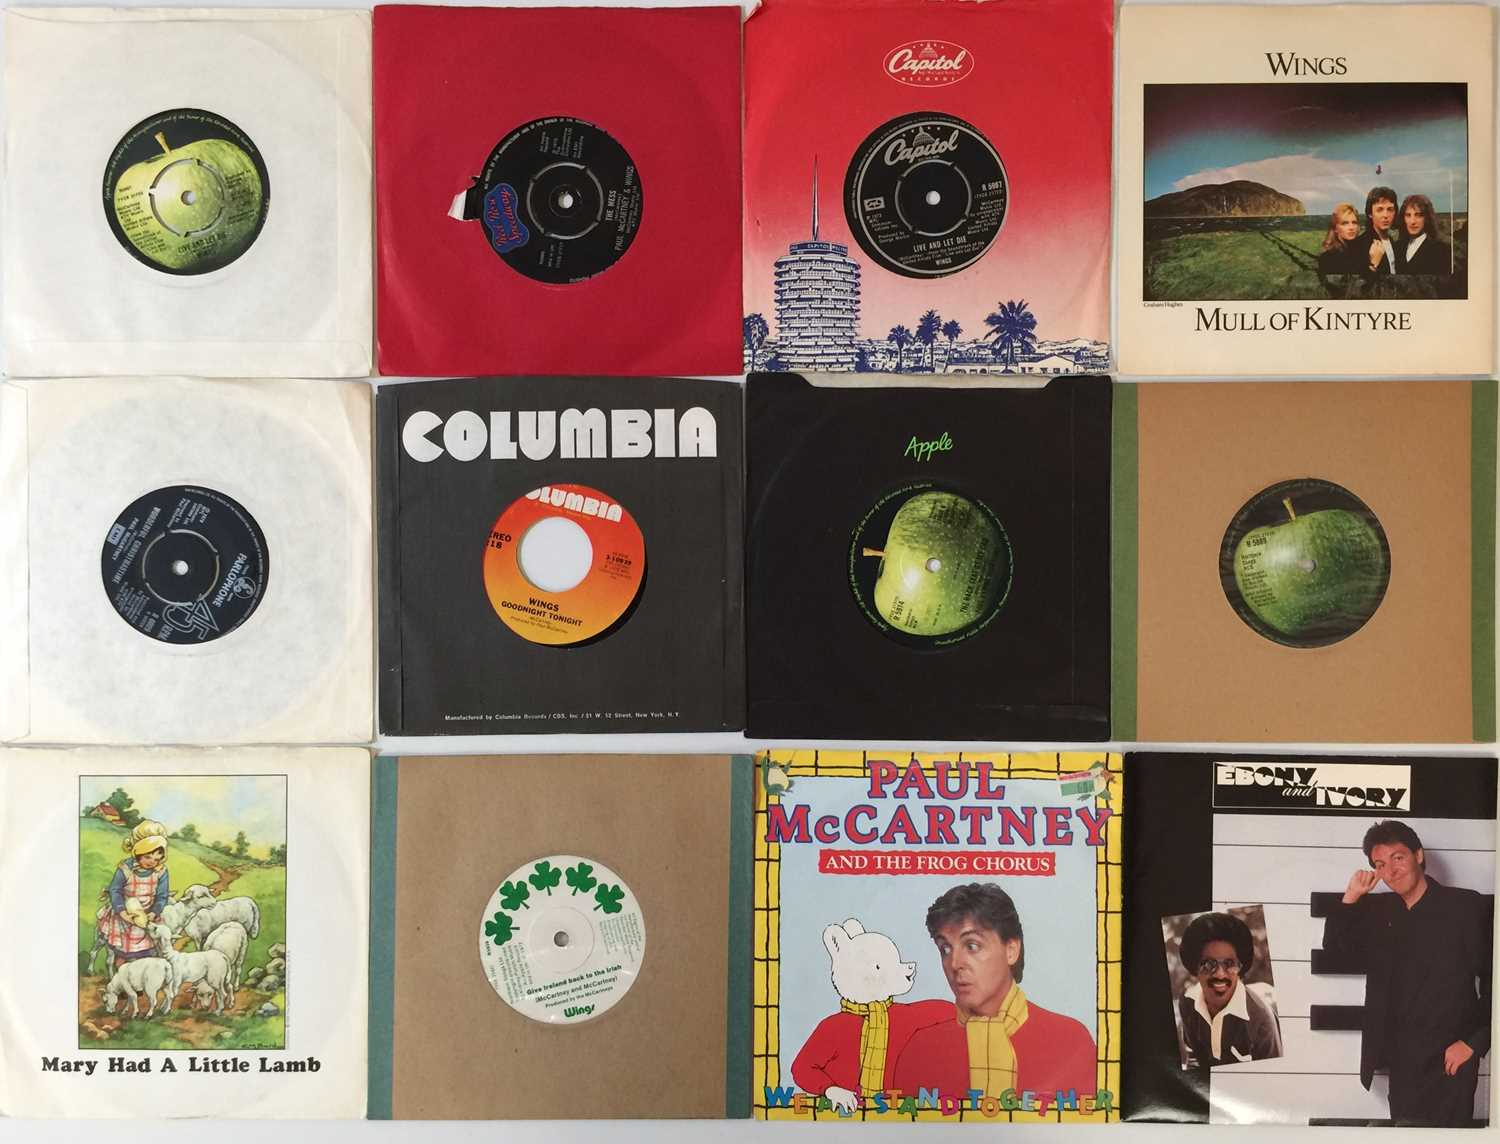 """WINGS/ PAUL MCCARTNEY AND RELATED - 7"""" INC DEMOS - Image 2 of 2"""